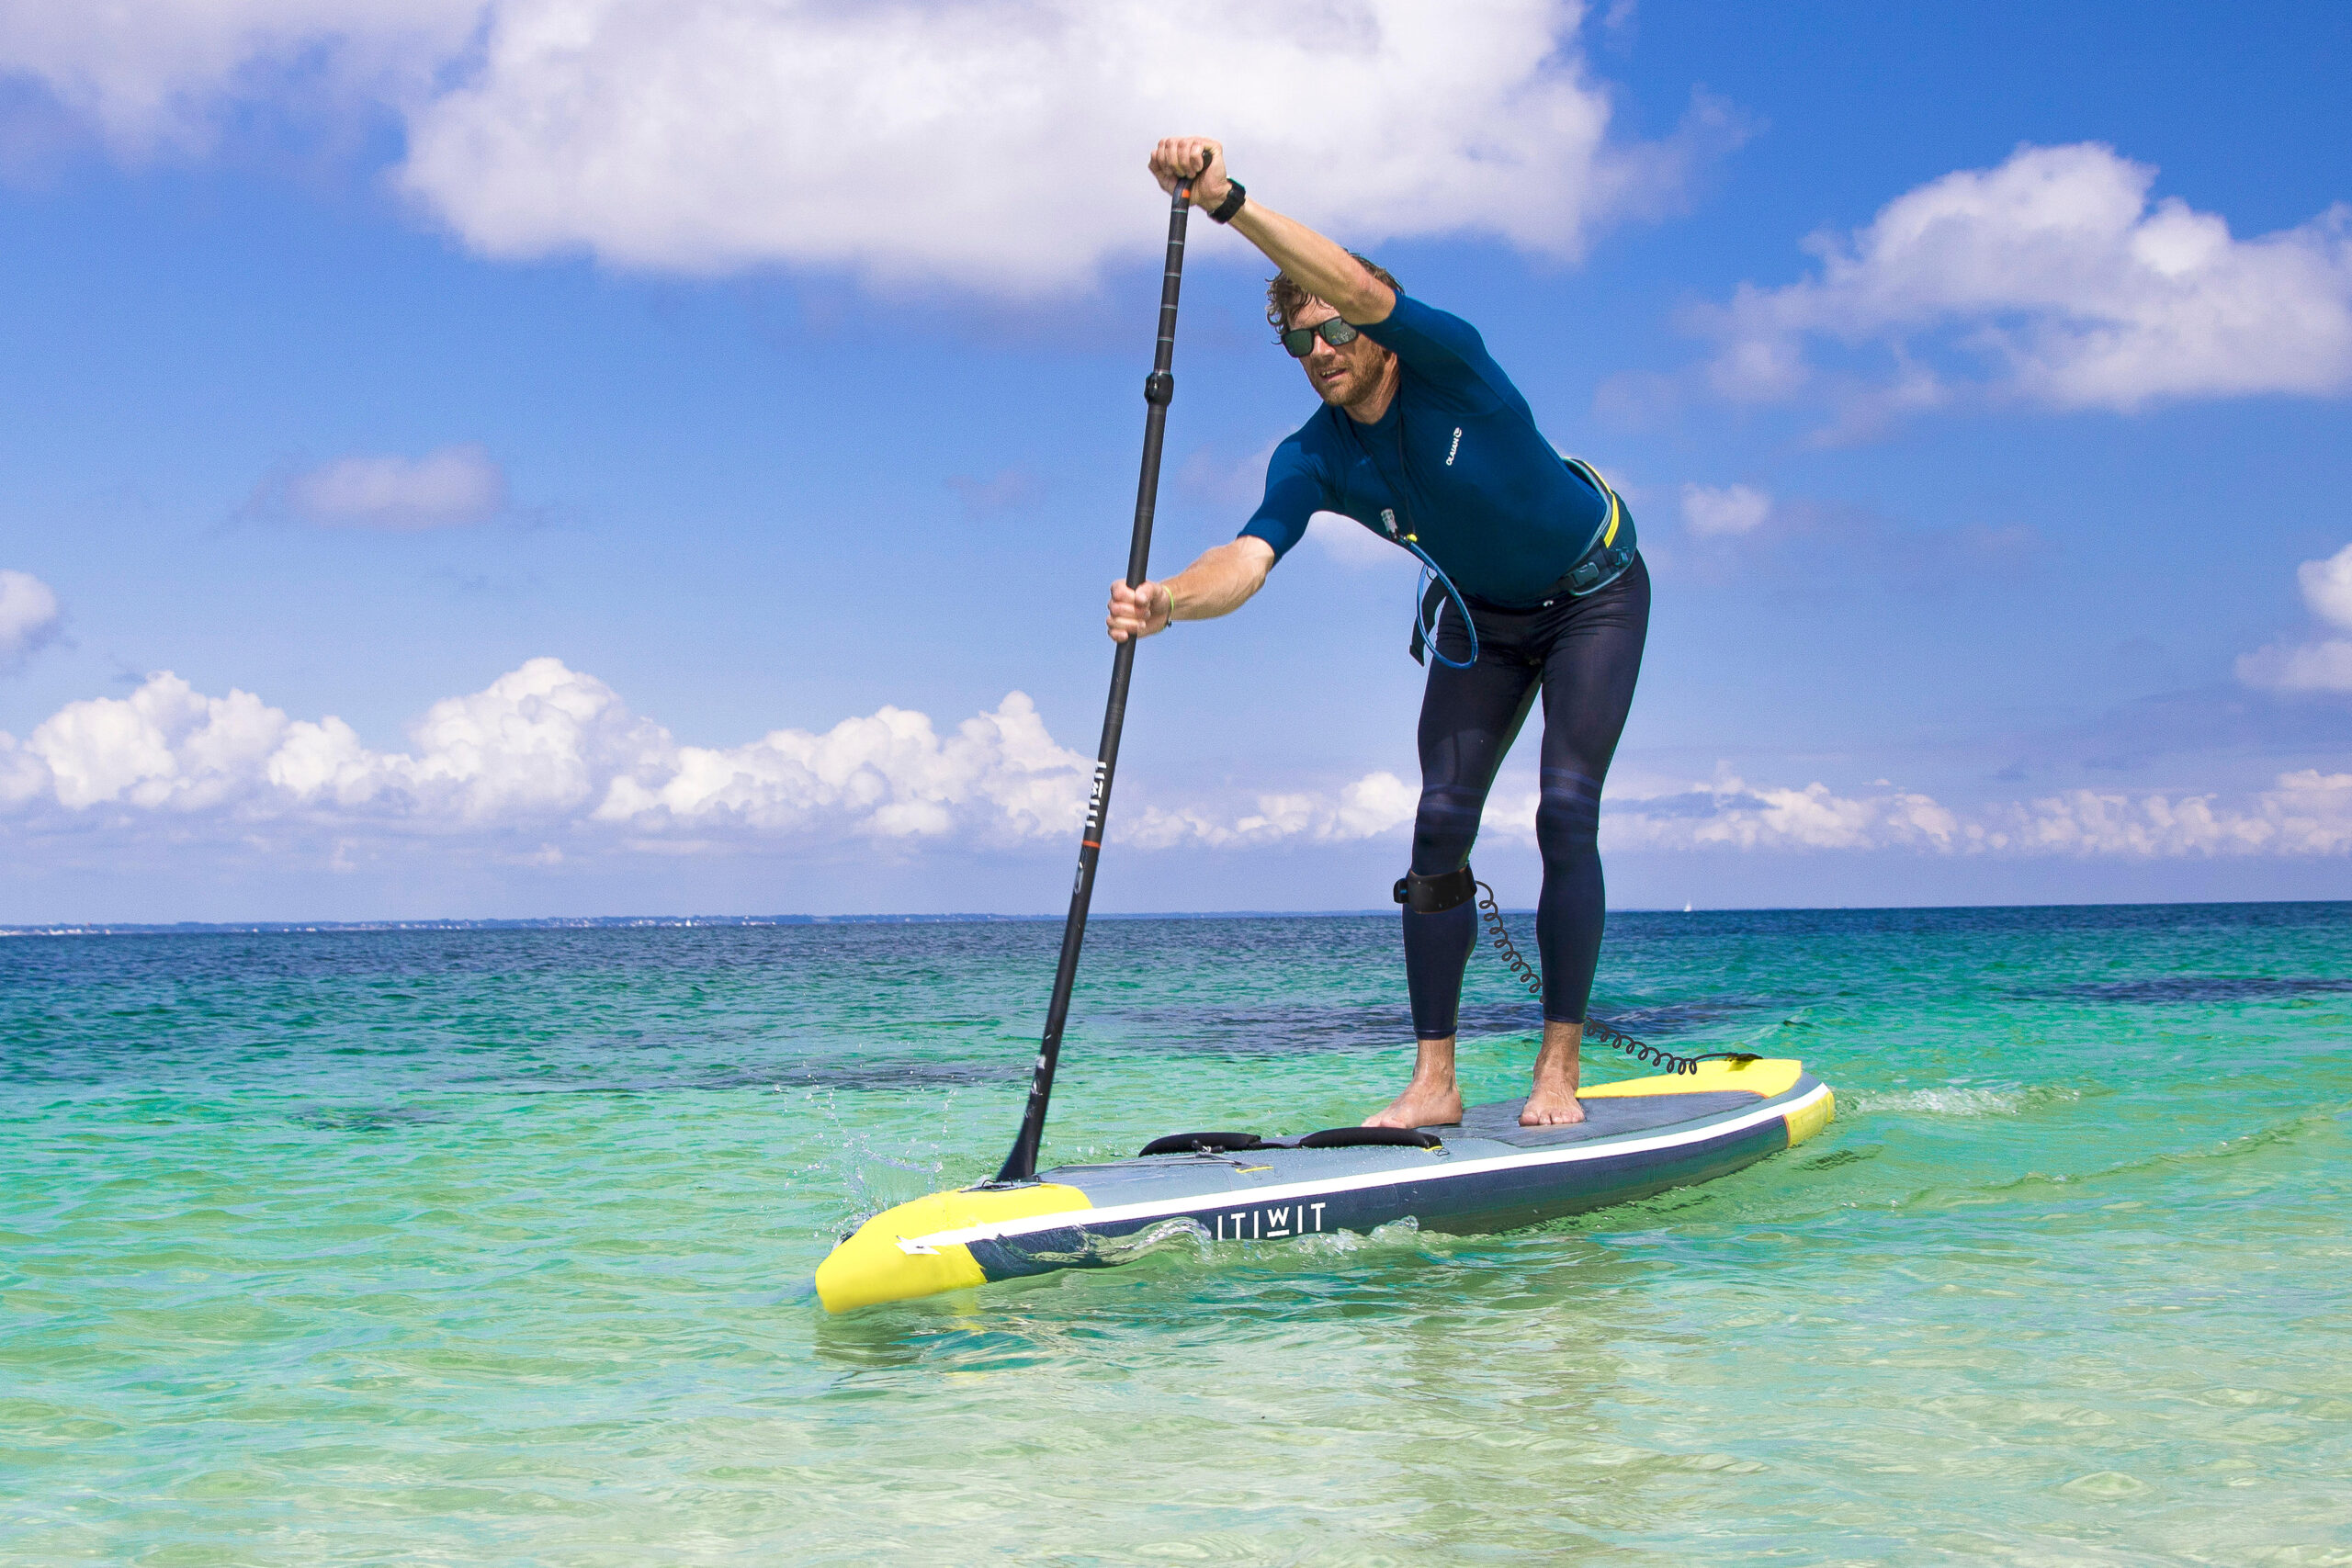 Stand Up Paddle Board Meaning Cheat Sheet